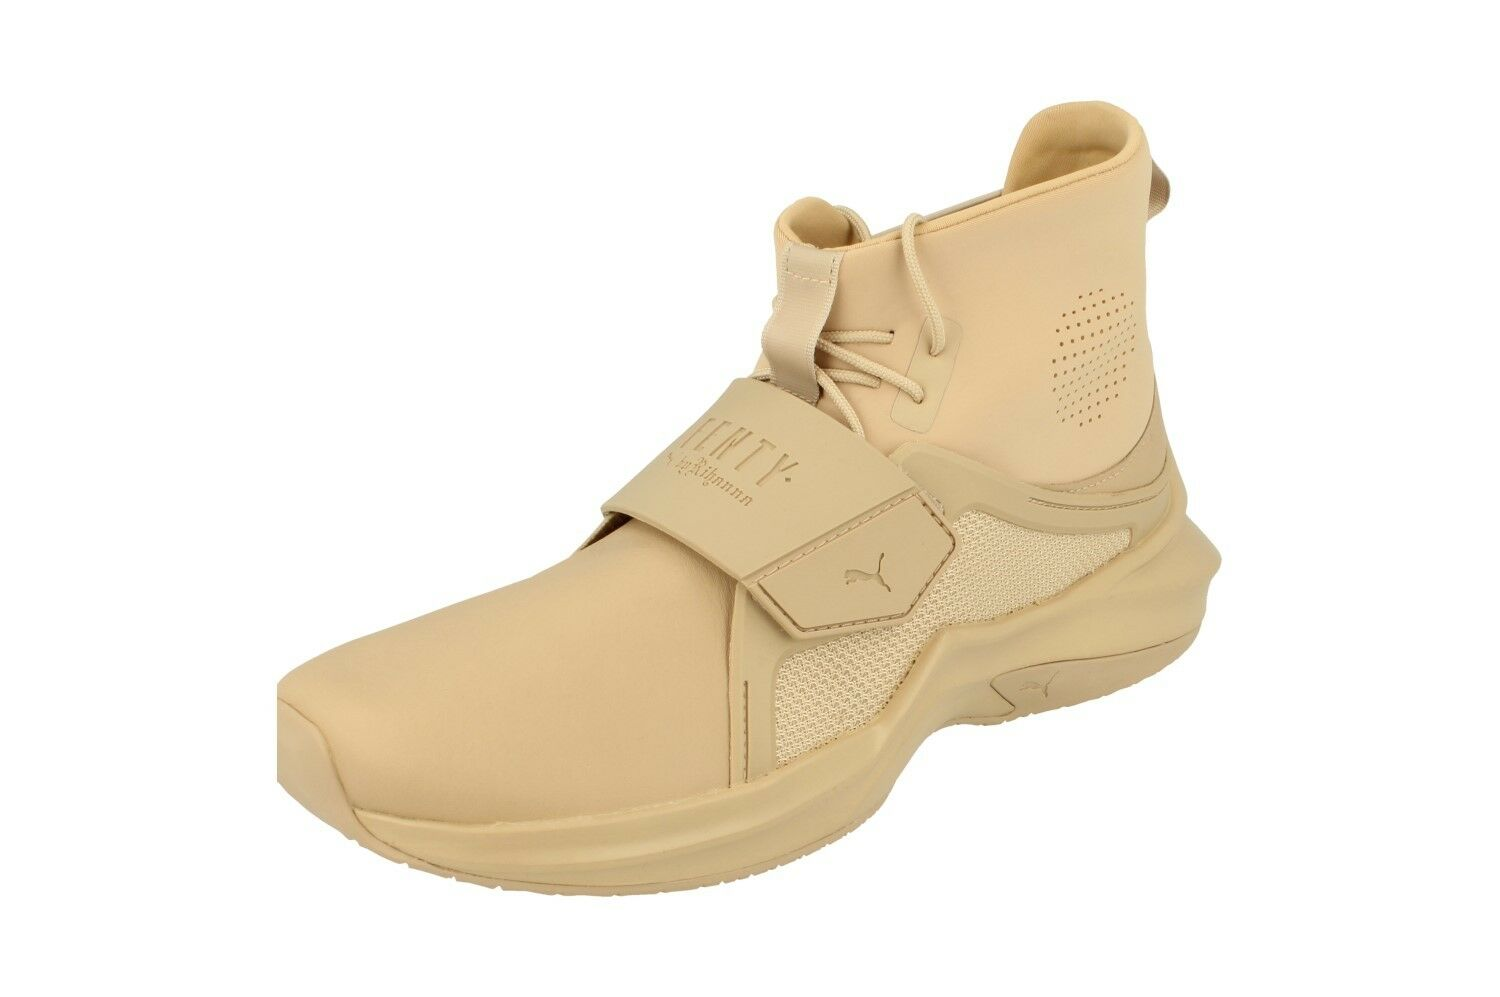 Puma The Trainer Hi By Fenty Rihanna Womens Trainers 190398 Sneakers Shoes 03